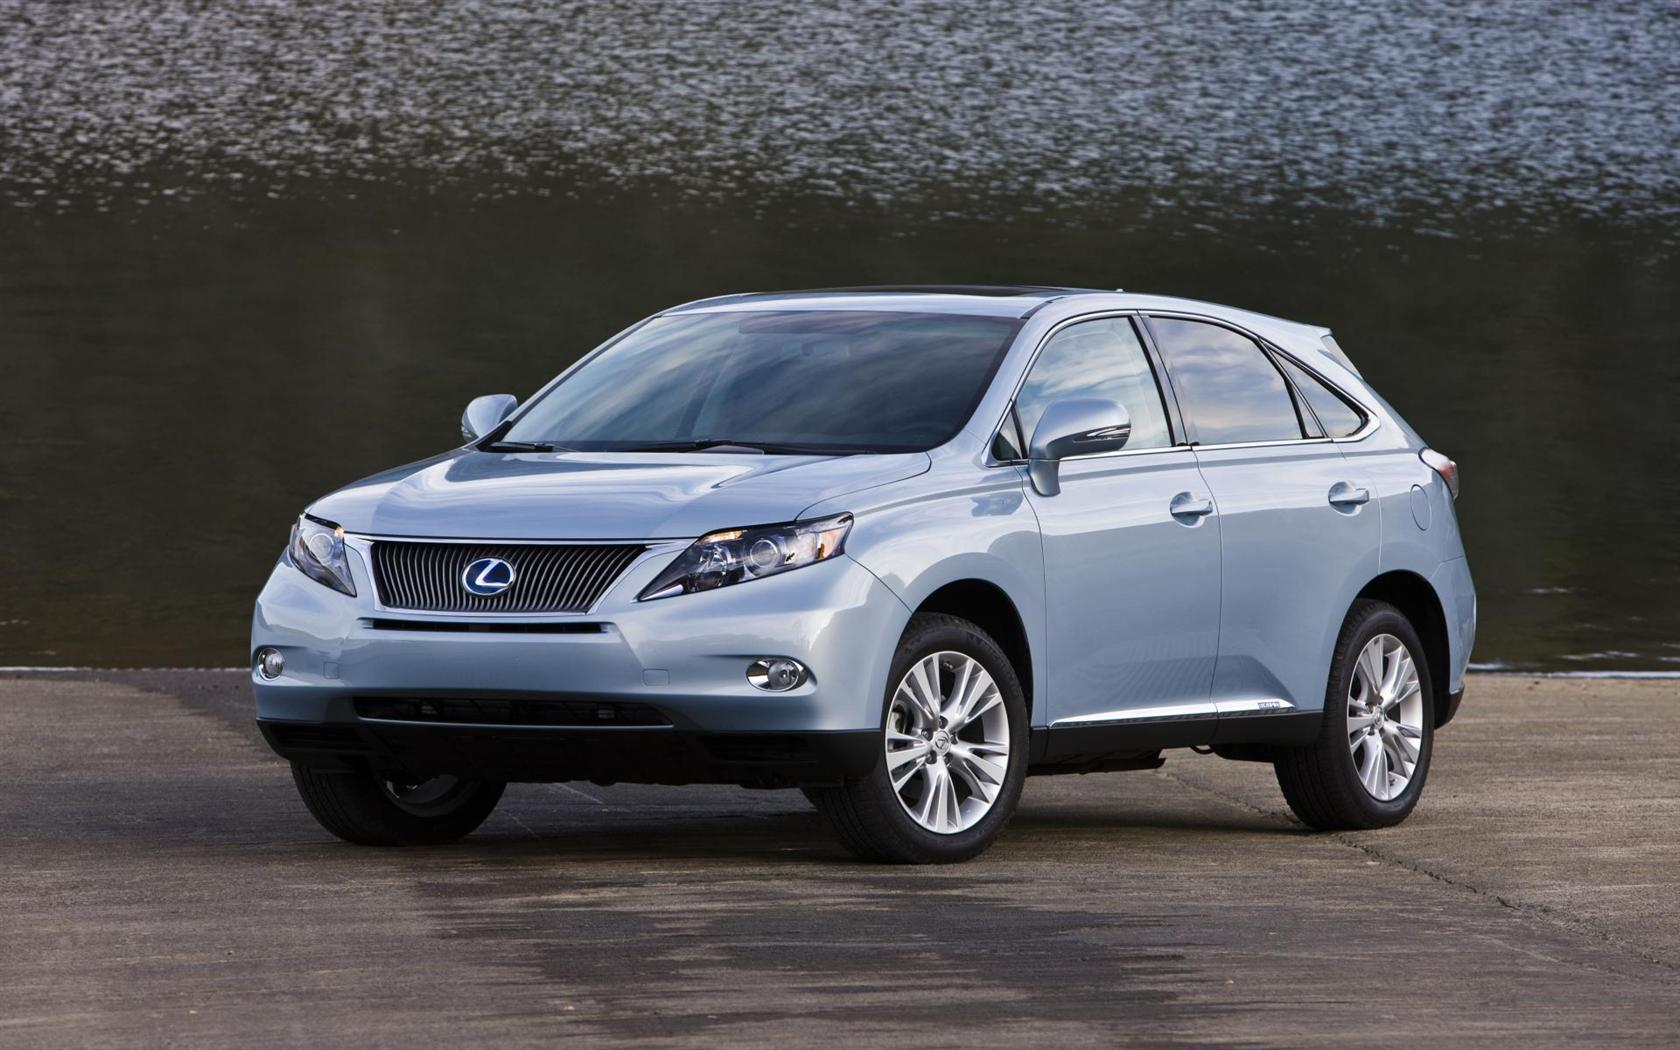 2012 Lexus RX 450h Images. Photo 2012-Lexus-RX-450h_SUV ...: http://www.conceptcarz.com/view/photo/780662,20604/2012-Lexus-RX-450h.aspx